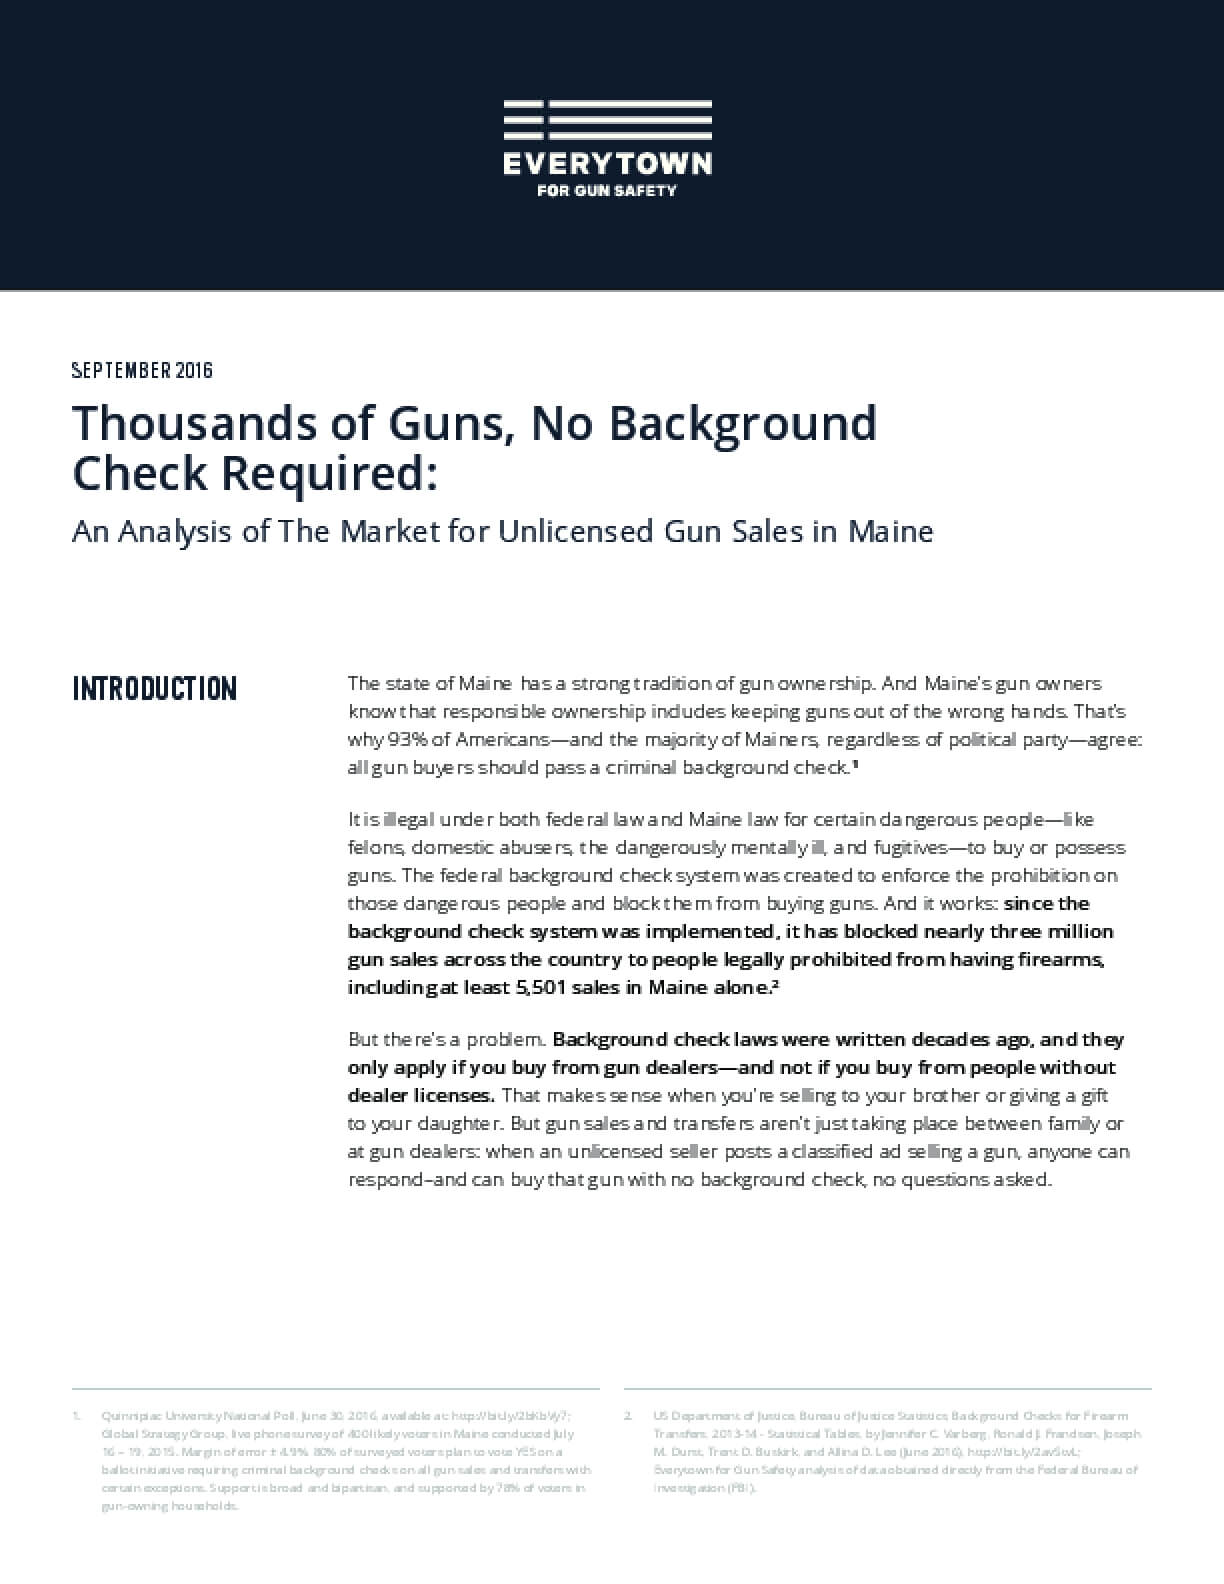 Thousands of Guns, No Background Check Required: An Analysis of The Market for Unlicensed Gun Sales in Maine